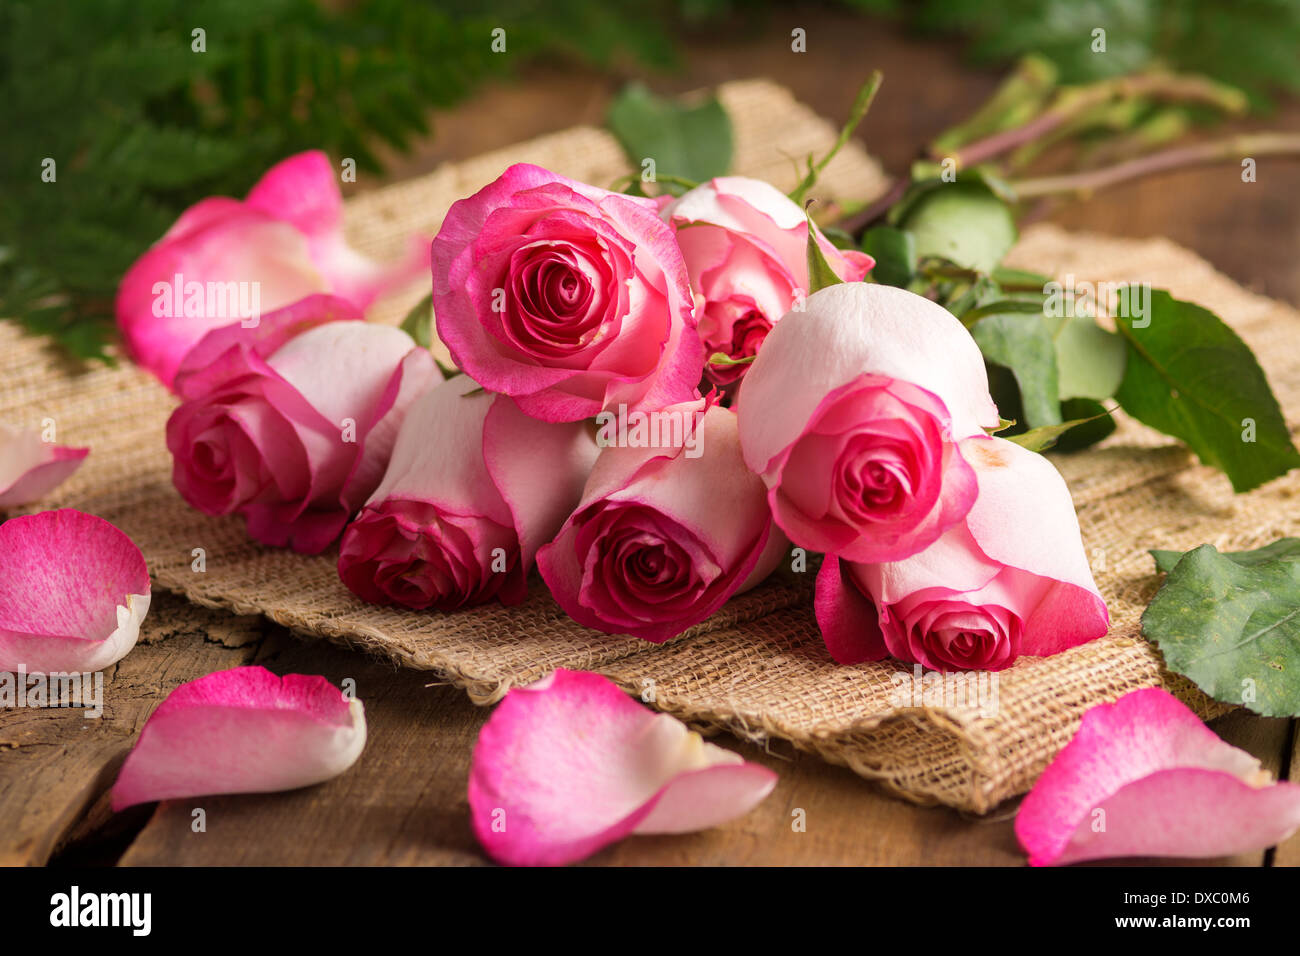 Pink roses on burlap ready to arrange - Stock Image